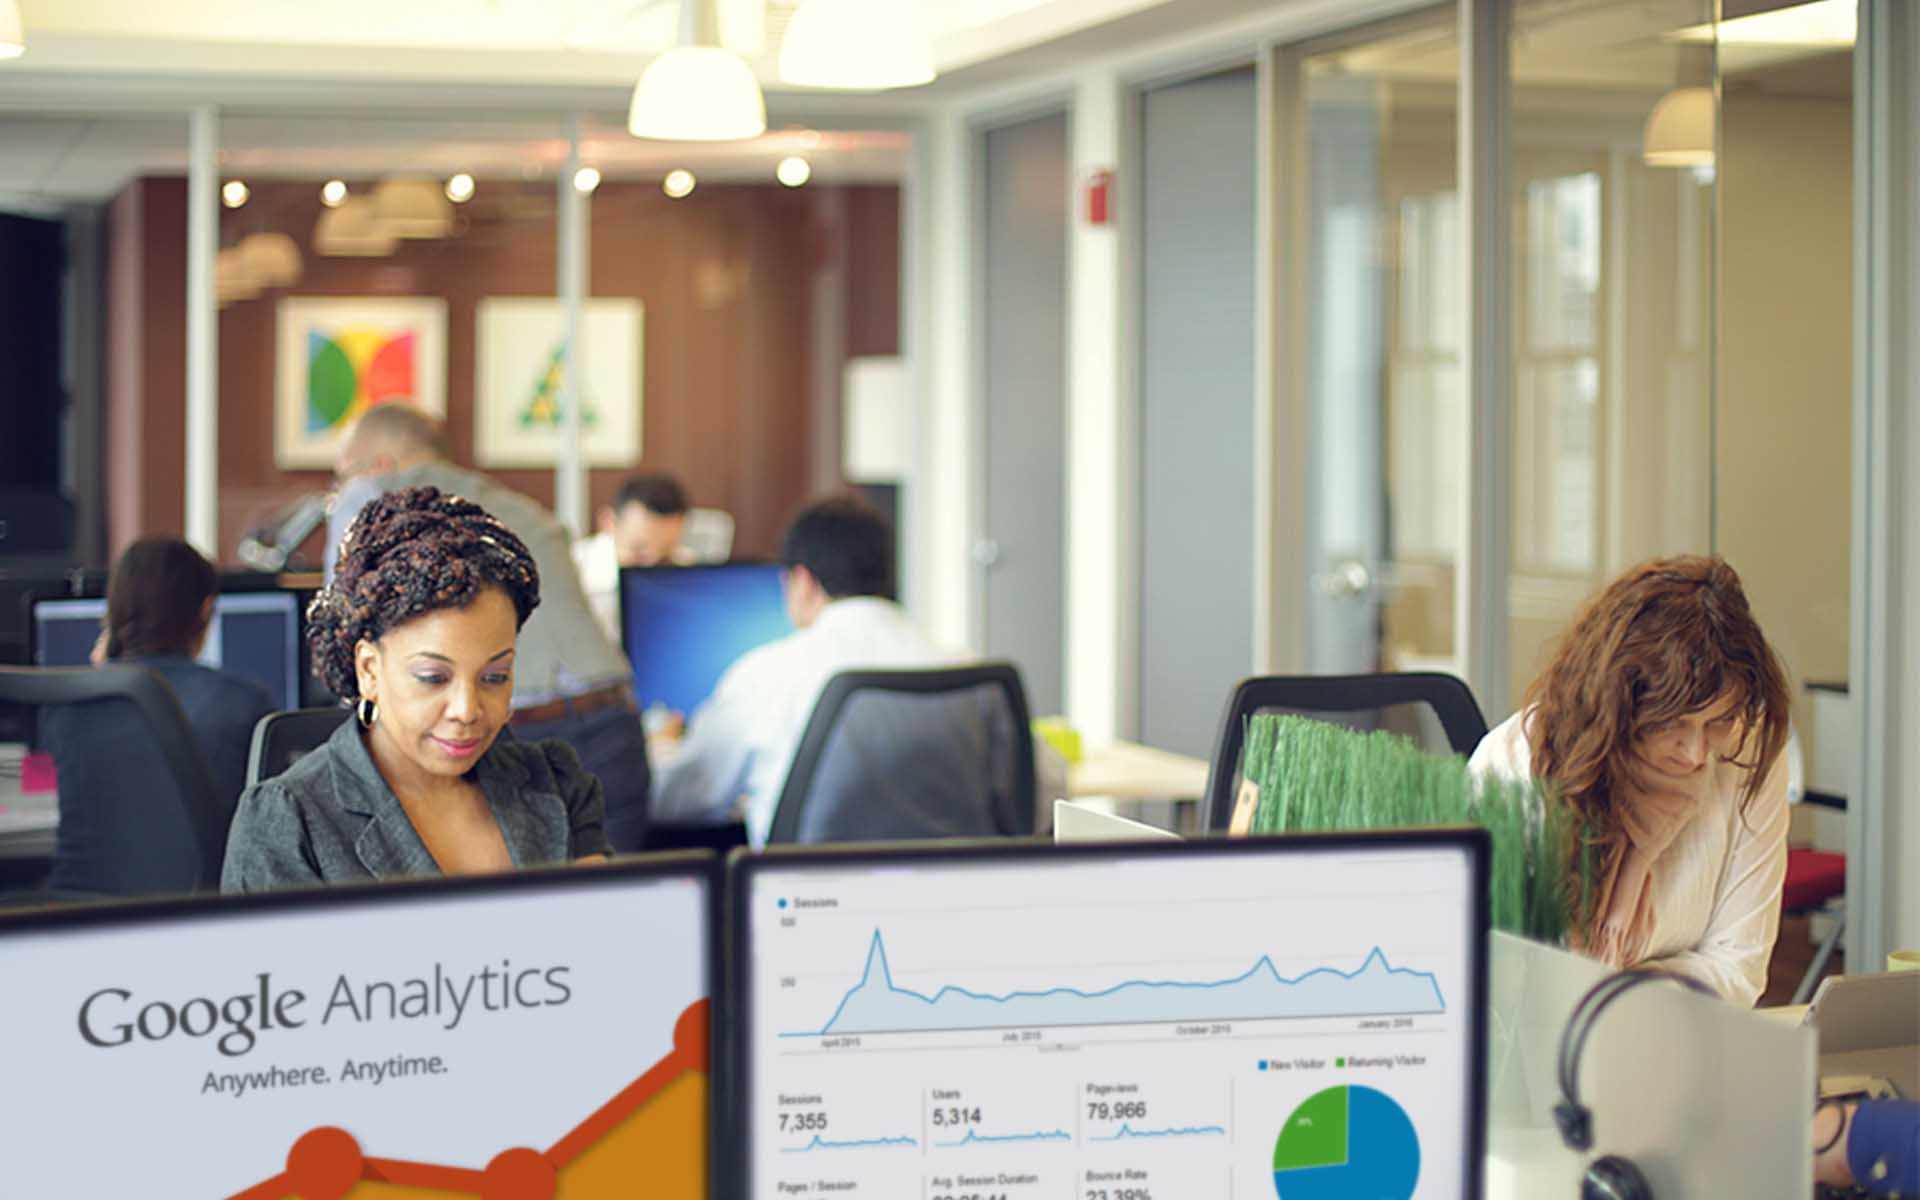 How to Use Google Analytics: Best Metrics & Reports